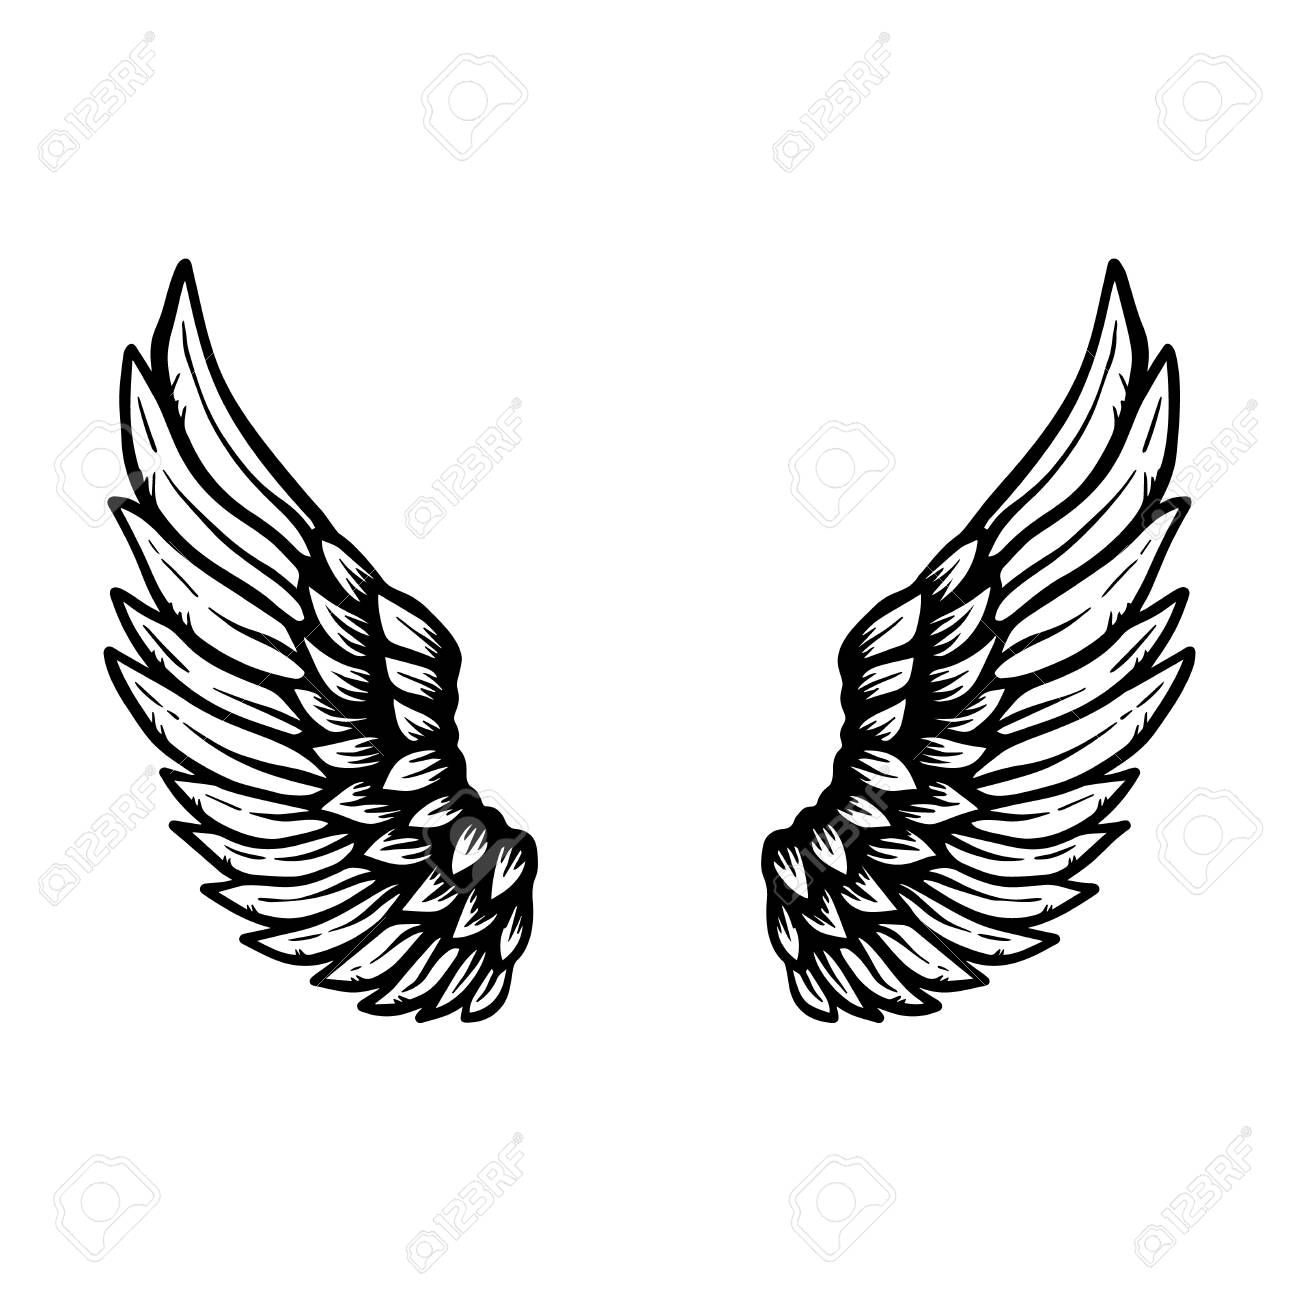 hand drawn eagle wings illustration isolated on white background royalty free cliparts vectors and stock illustration image 108730628 hand drawn eagle wings illustration isolated on white background